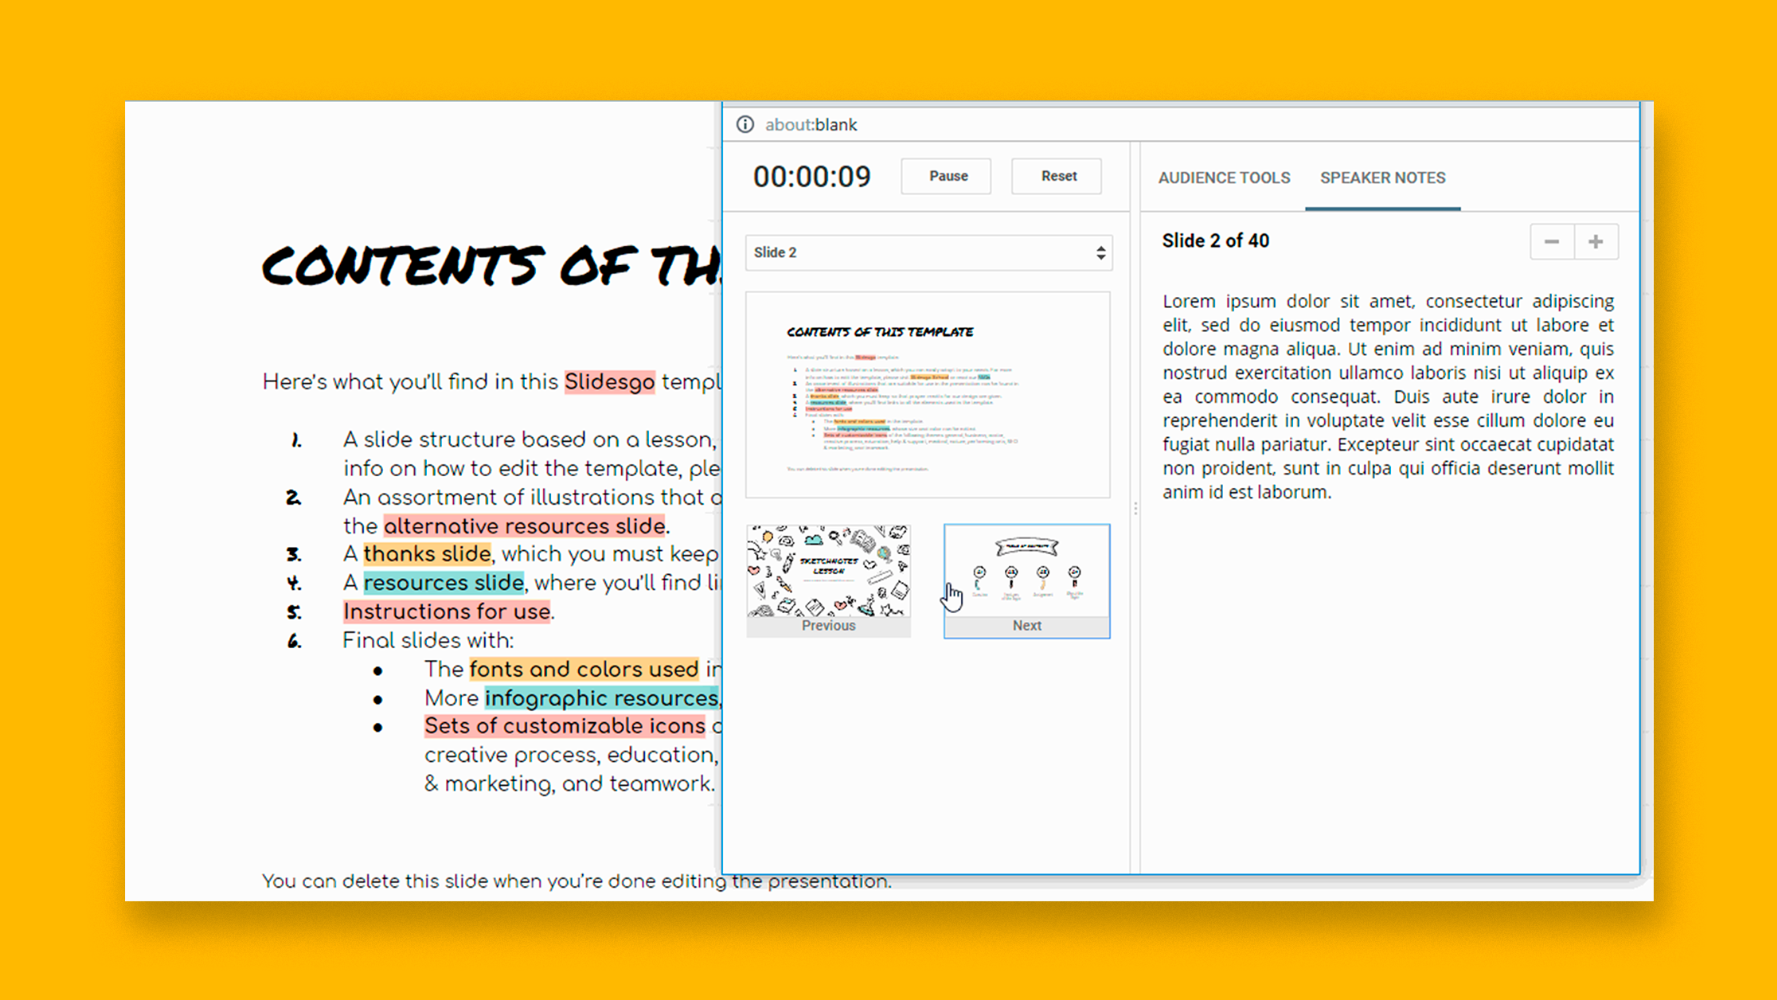 How to Add and Work with Speaker Notes in Google Slides - Tutorial